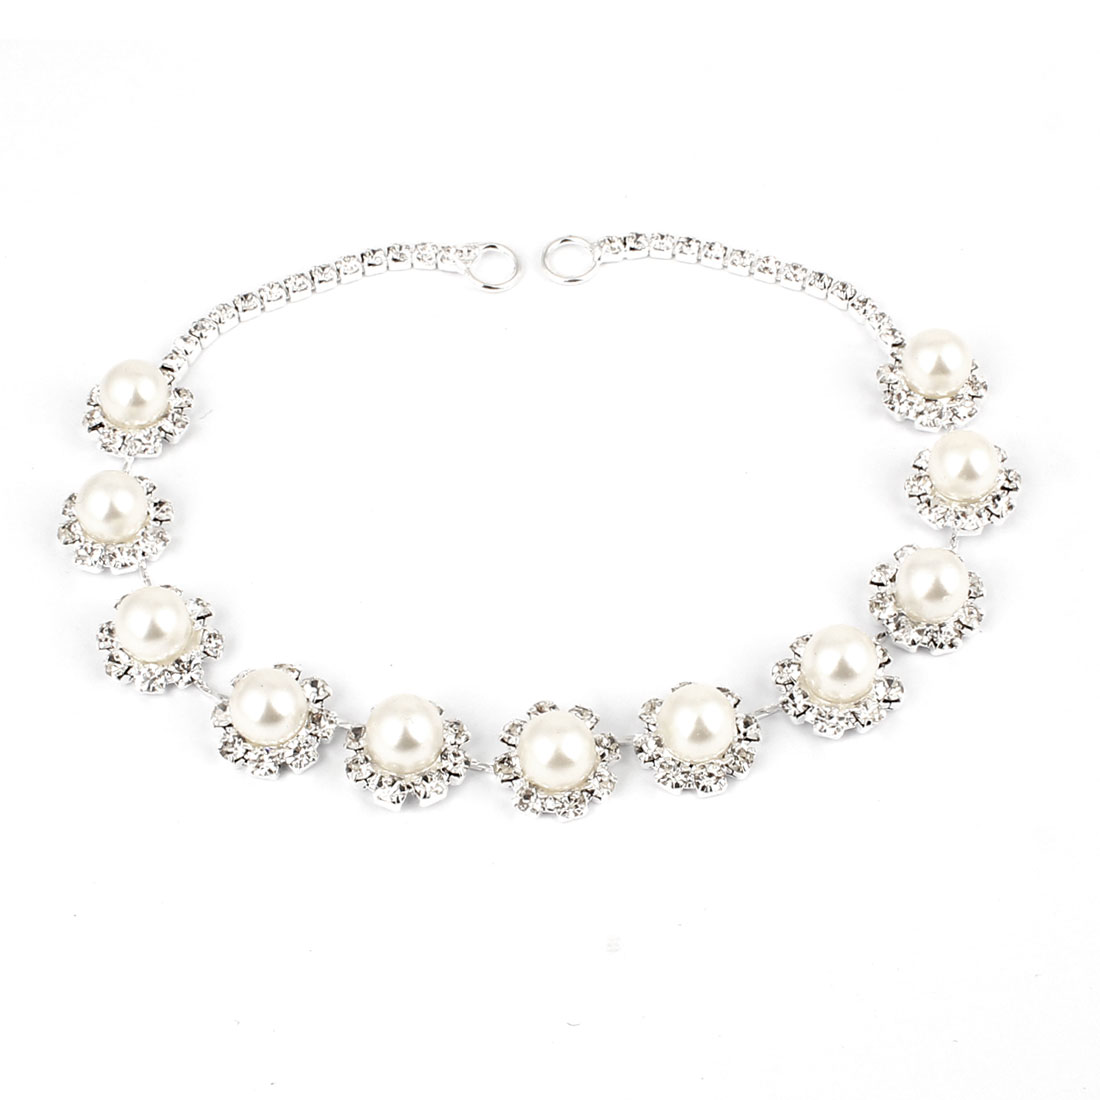 Glittery Rhinestones Inlaid Imitation Pearl Decor Hair Clip Head Chain